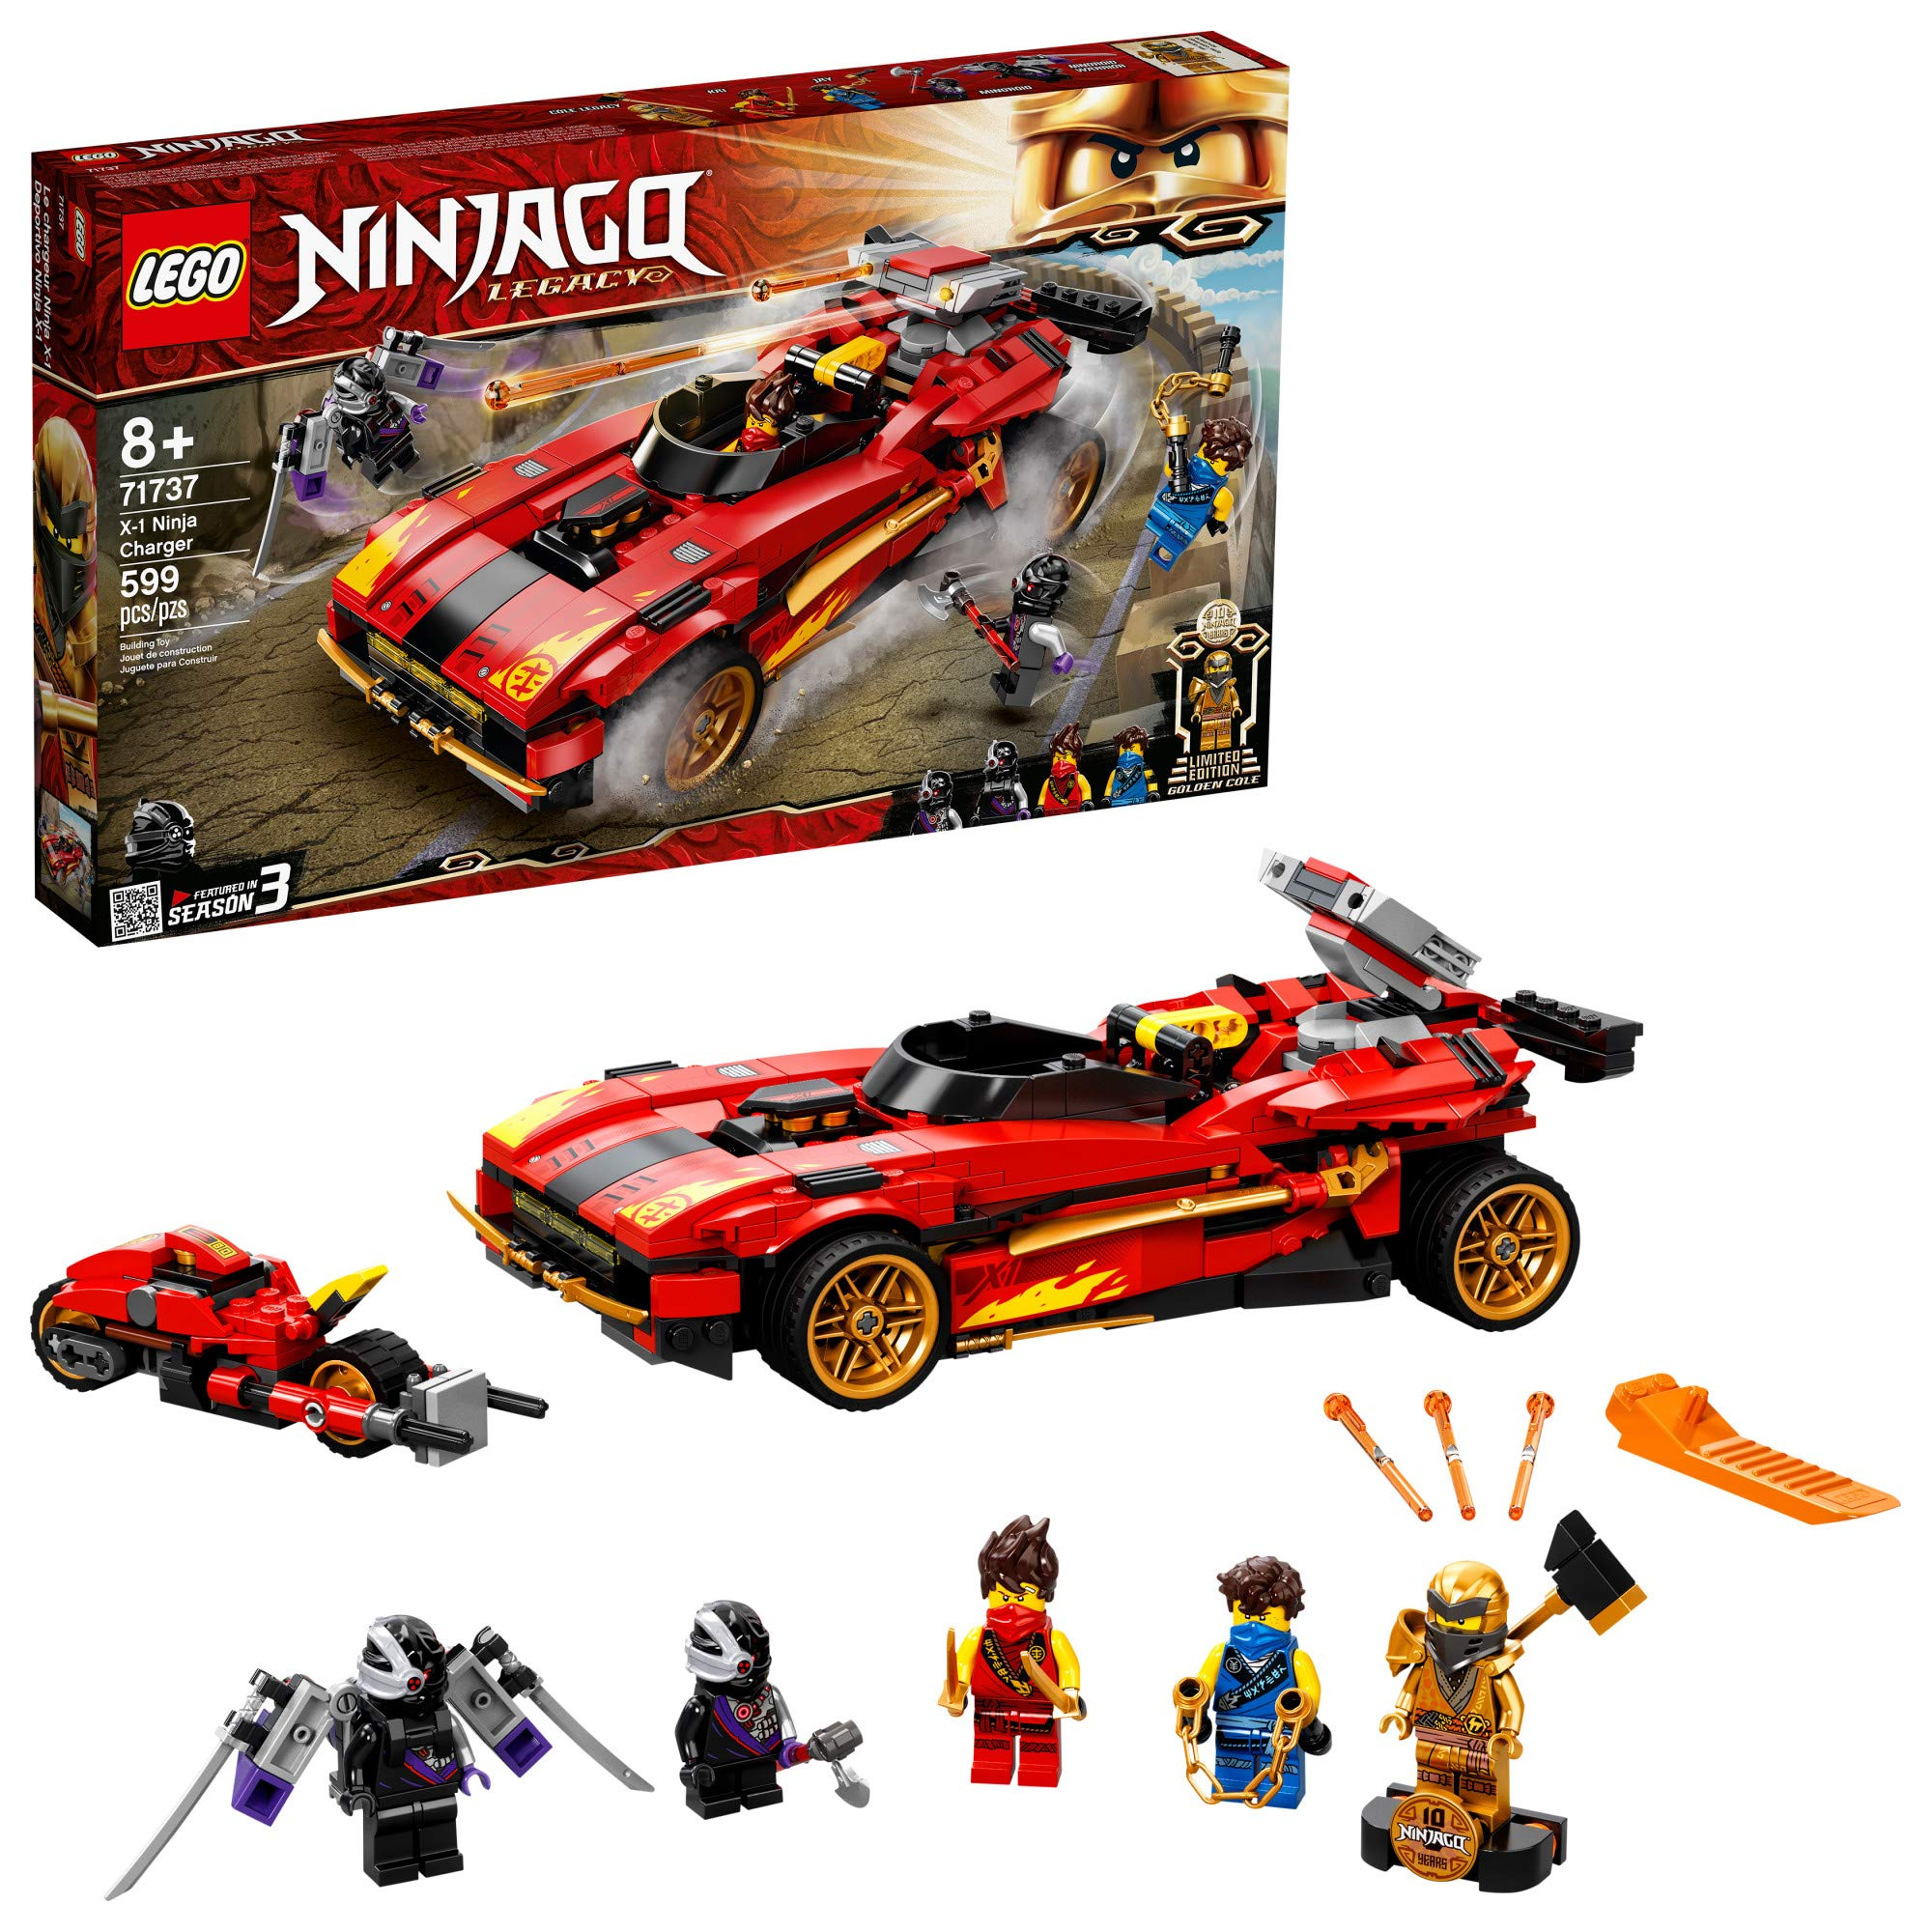 LEGO NINJAGO Legacy X-1 Ninja Charger 71737 Ninja Toy Building Kit Featuring Motorcycle and Collectible Minifigures, New 2021 (599 Pieces)